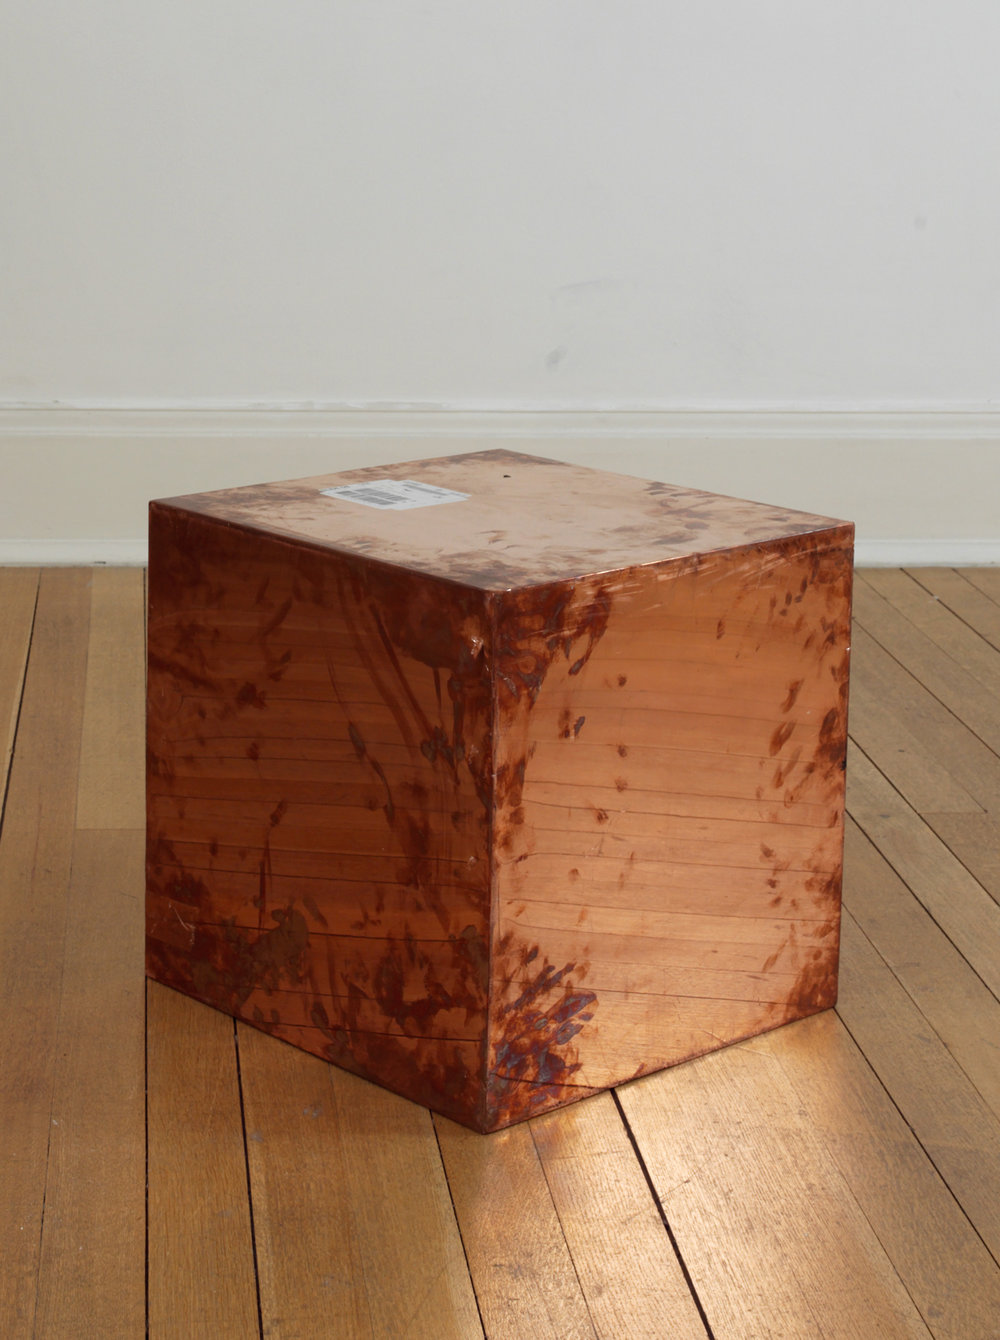 FedEx® Large Kraft Box  © 2005 FEDEX 330508 REV 10/05 SSCC, International Priority, Los Angeles–London trk#868587728028, October 02–05, 2009    2009–   Polished copper, accrued FedEx shipping and tracking labels  20 x 20 x 20 inches   Production Stills, 2009